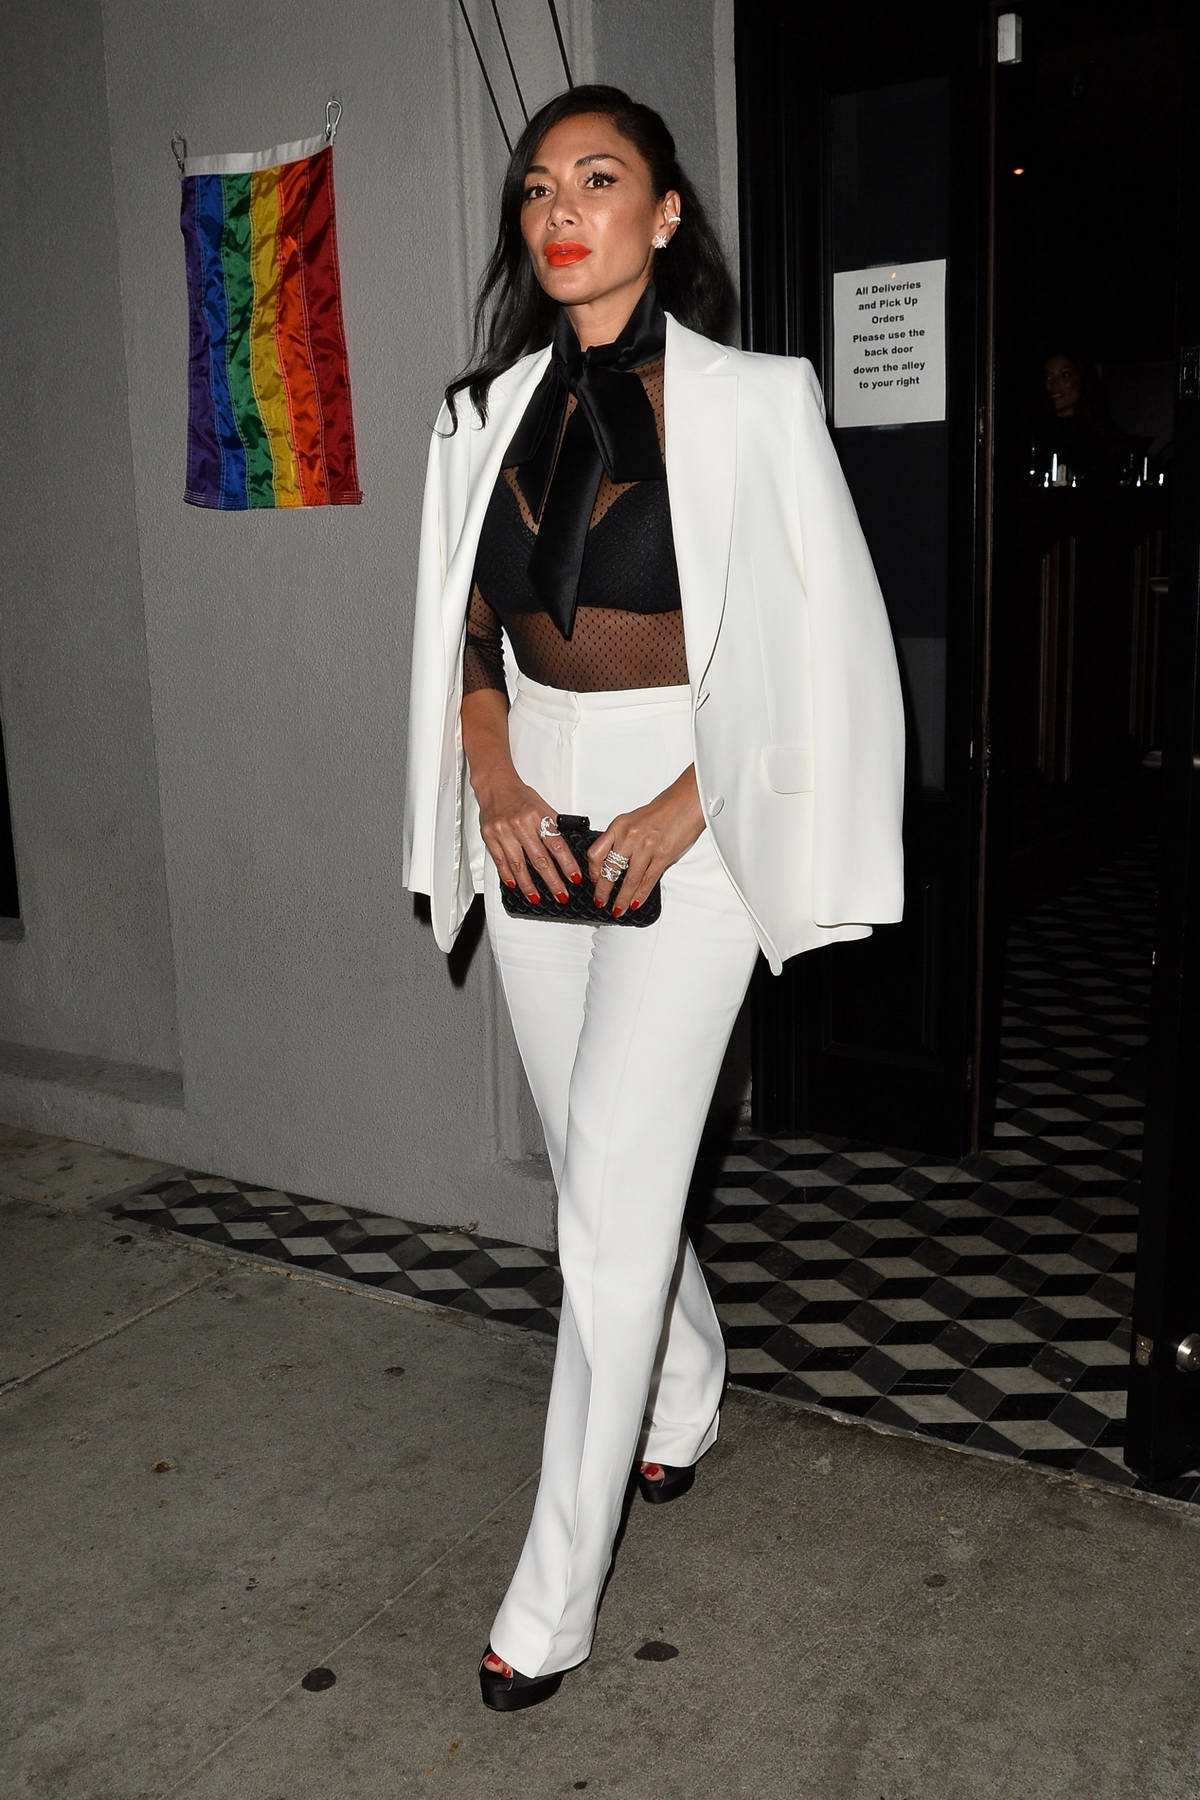 Nicole Scherzinger dons a white suit as she grabs dinner at Craig's in West Hollywood, Los Angeles